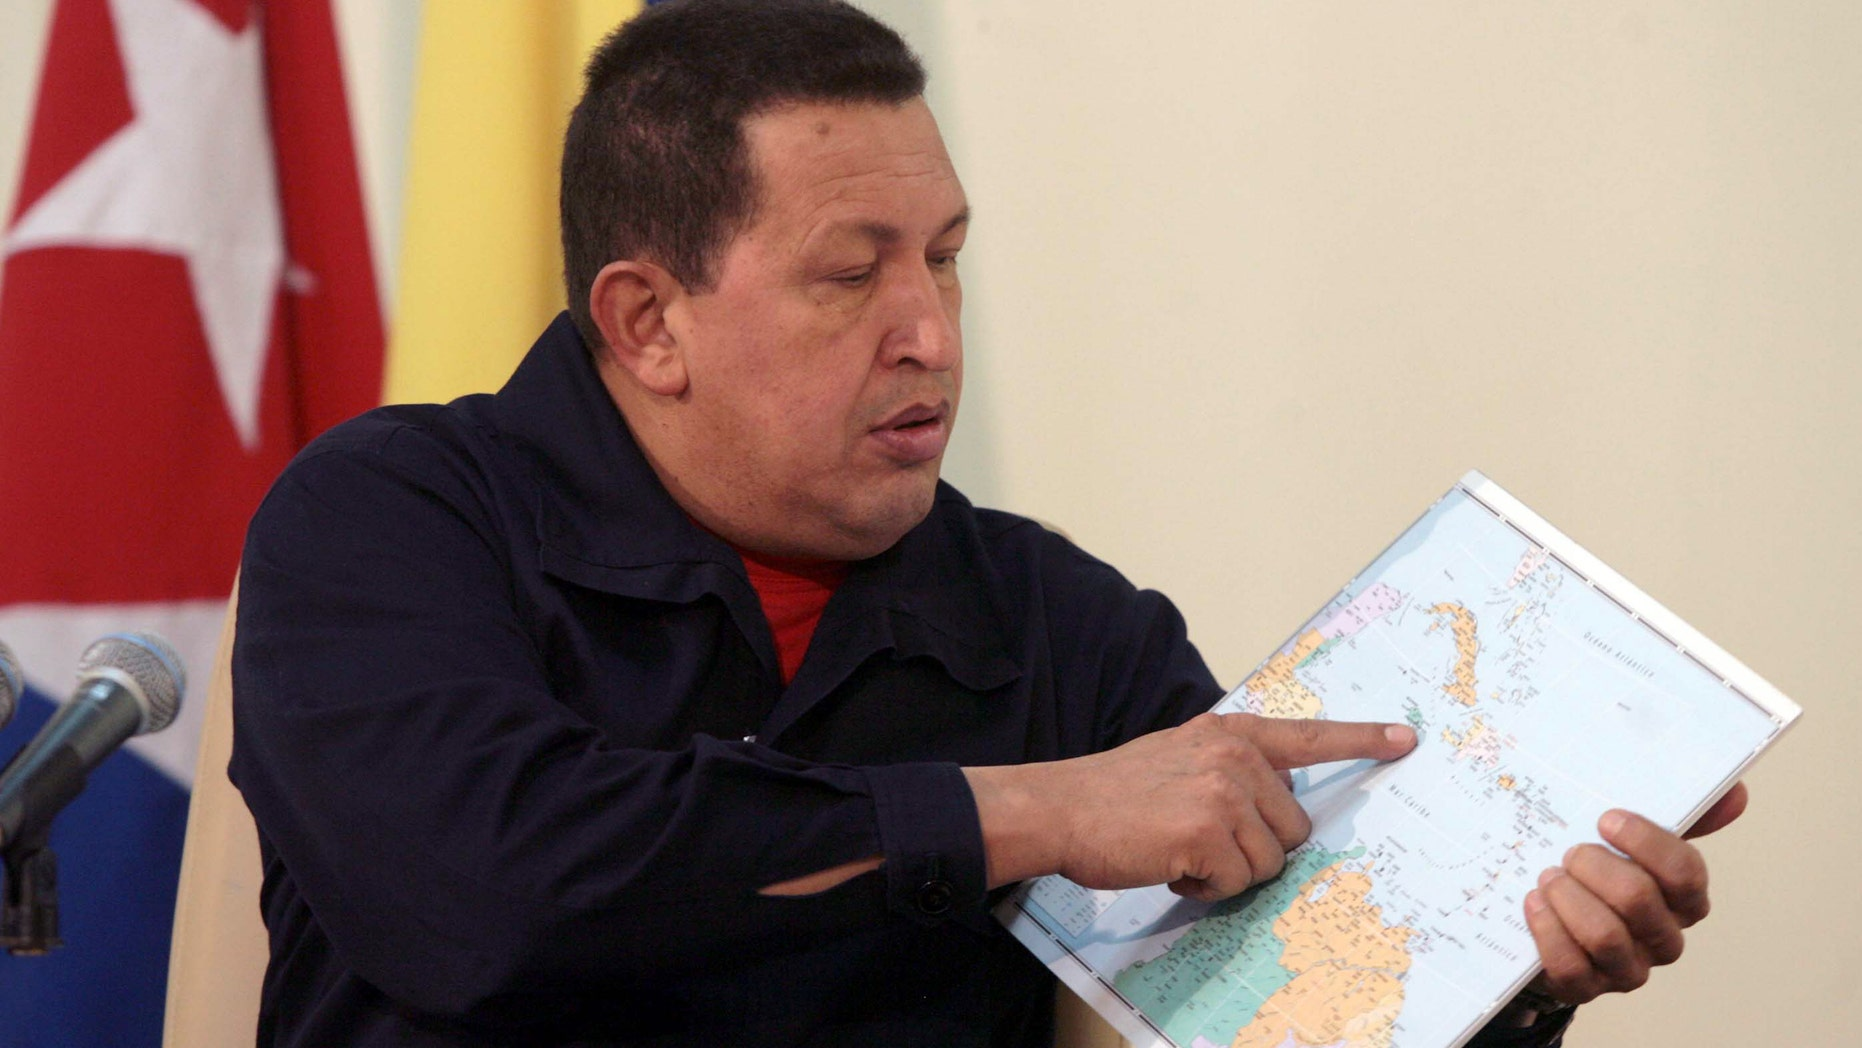 In this photo released by Miraflores Press Office, Venezuela's President Hugo Chavez, left, points at a map of the Caribbean region during a live broadcast interview on Cuban Television, in Havana, Cuba, Sunday Nov. 7, 2010. Chavez is in Cuba to attend meetings between the two governments in the tenth anniversary of their aid and commercial agreements. (AP Photo/Miraflores Press Office, Francisco Batista)